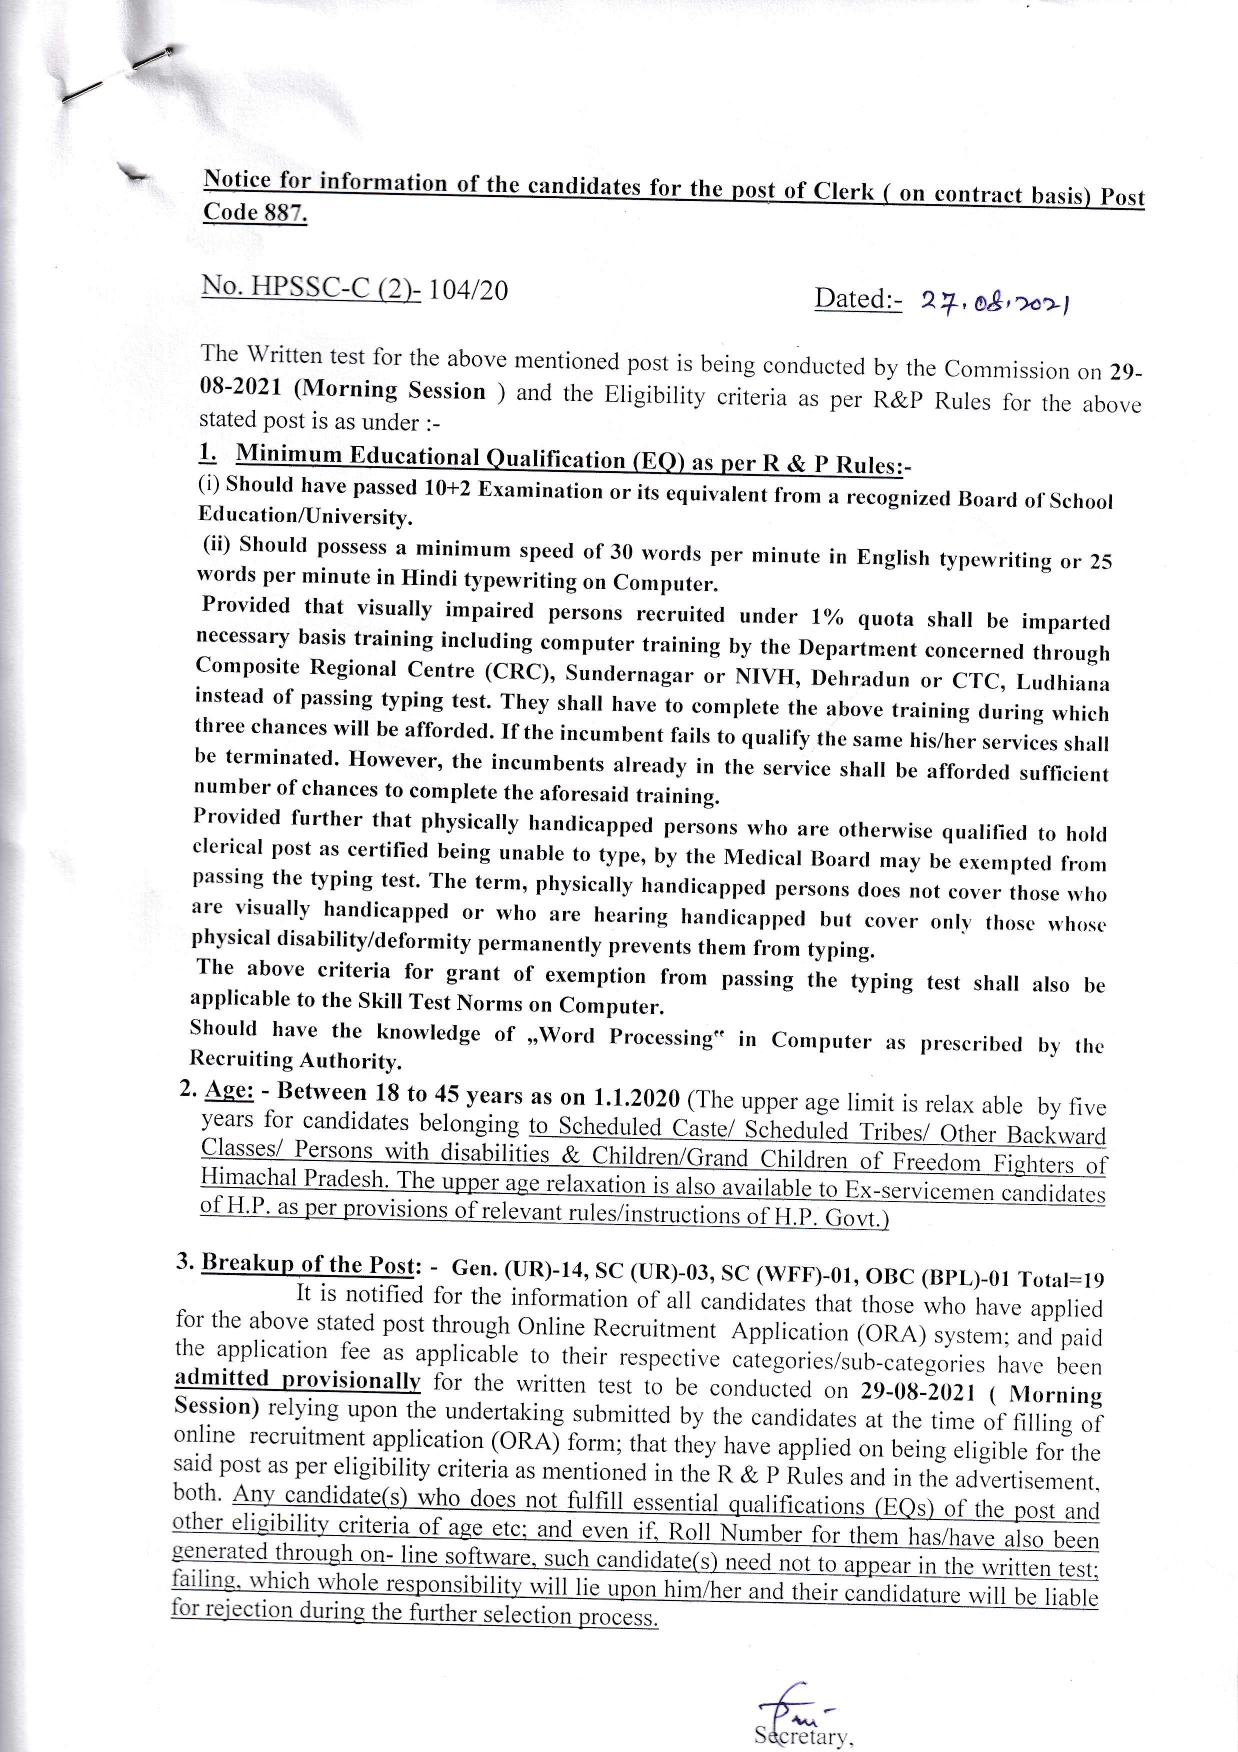 Important Notice For The Post of Clerk Code 887 :-HPSSC Hamirpur